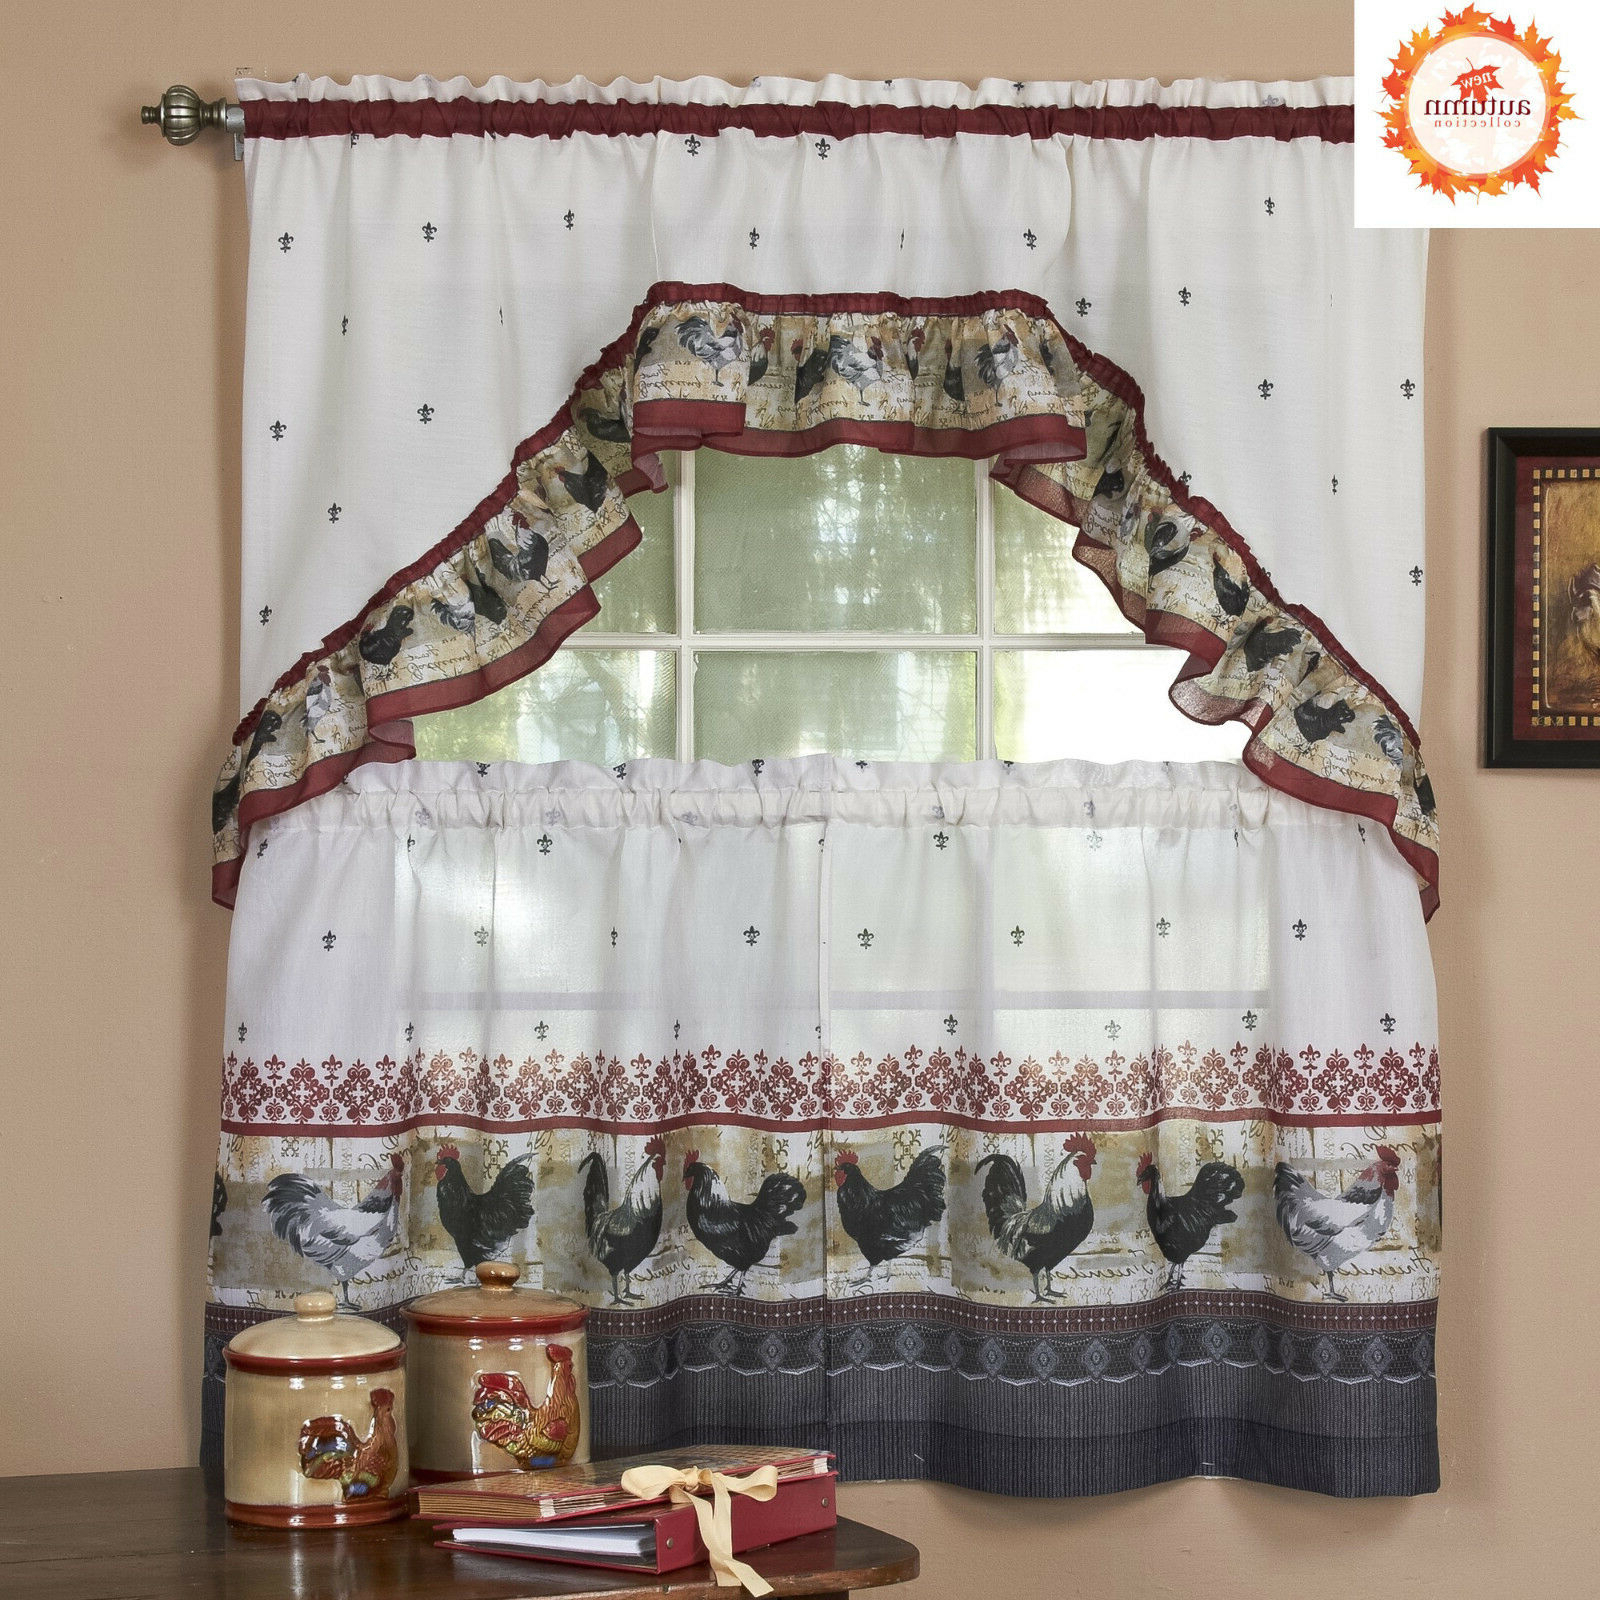 Delicious Apples Kitchen Curtain Tier And Valance Sets Intended For Most Up To Date Rooster Complete Kitchen Curtain Tier And Swag Set – Assorted Sizes (View 7 of 20)